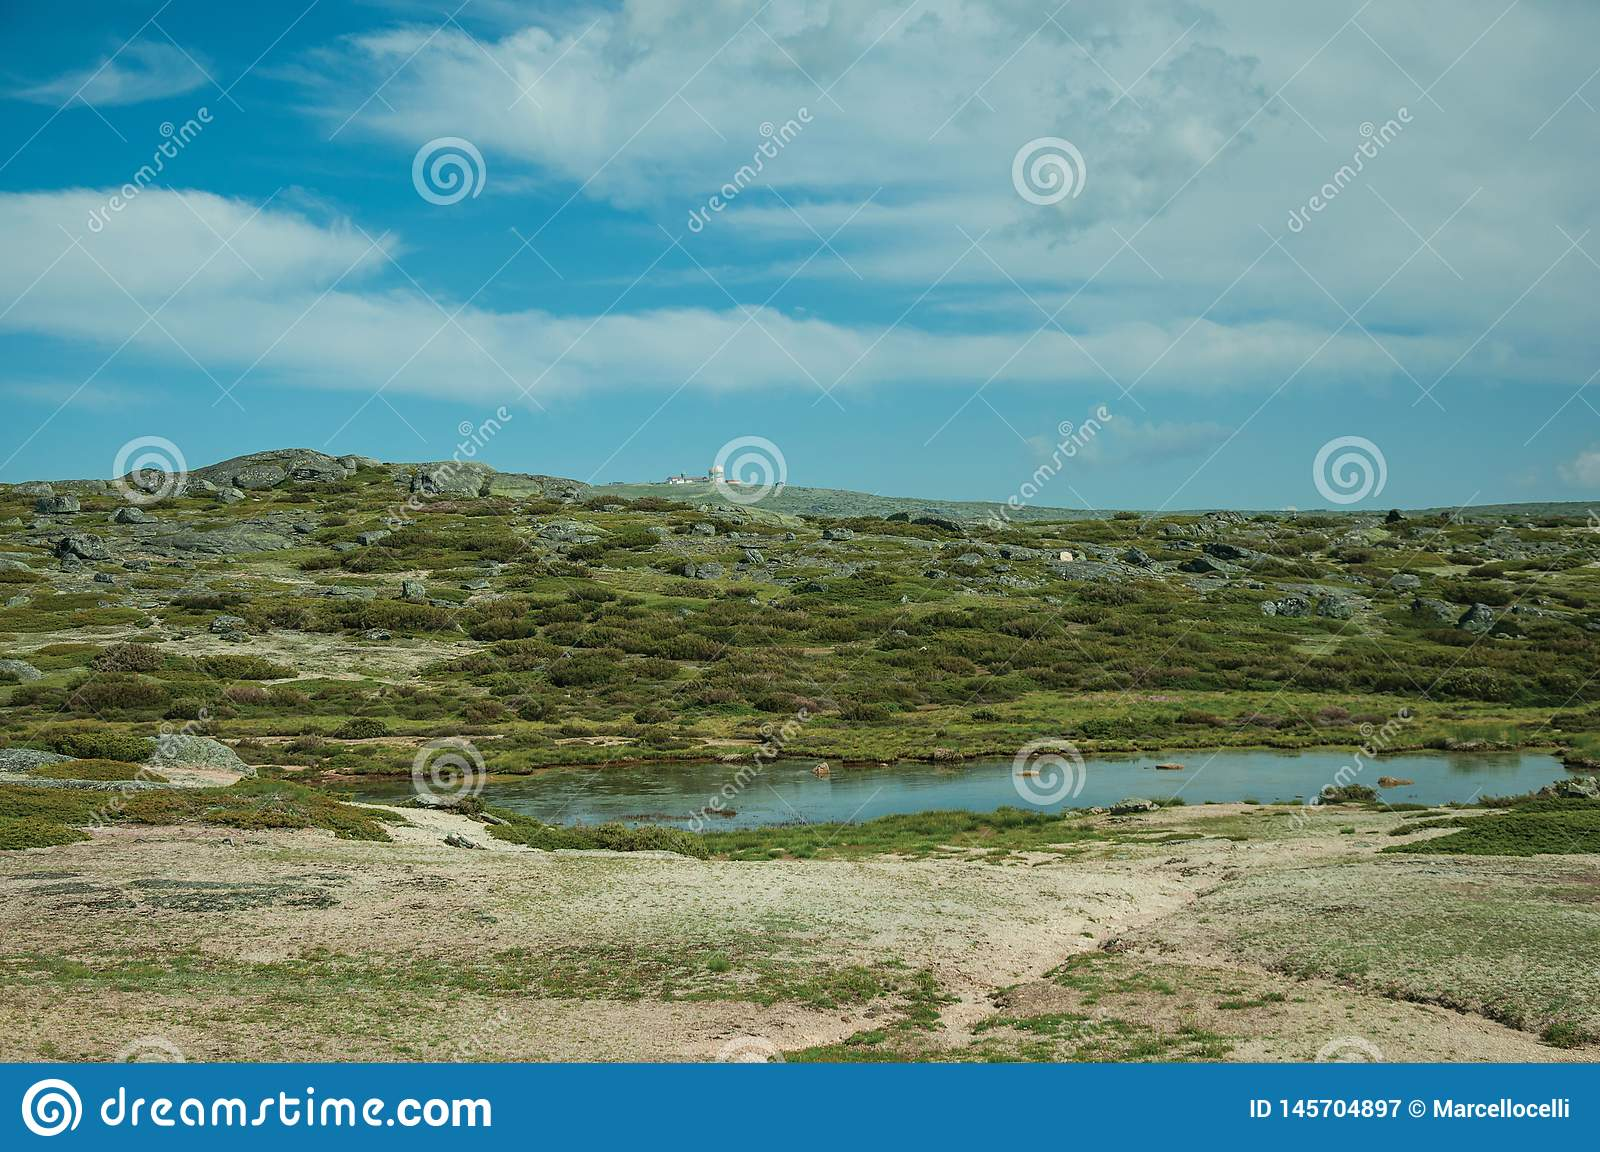 Lake on rocky landscape with domes of an old radar station